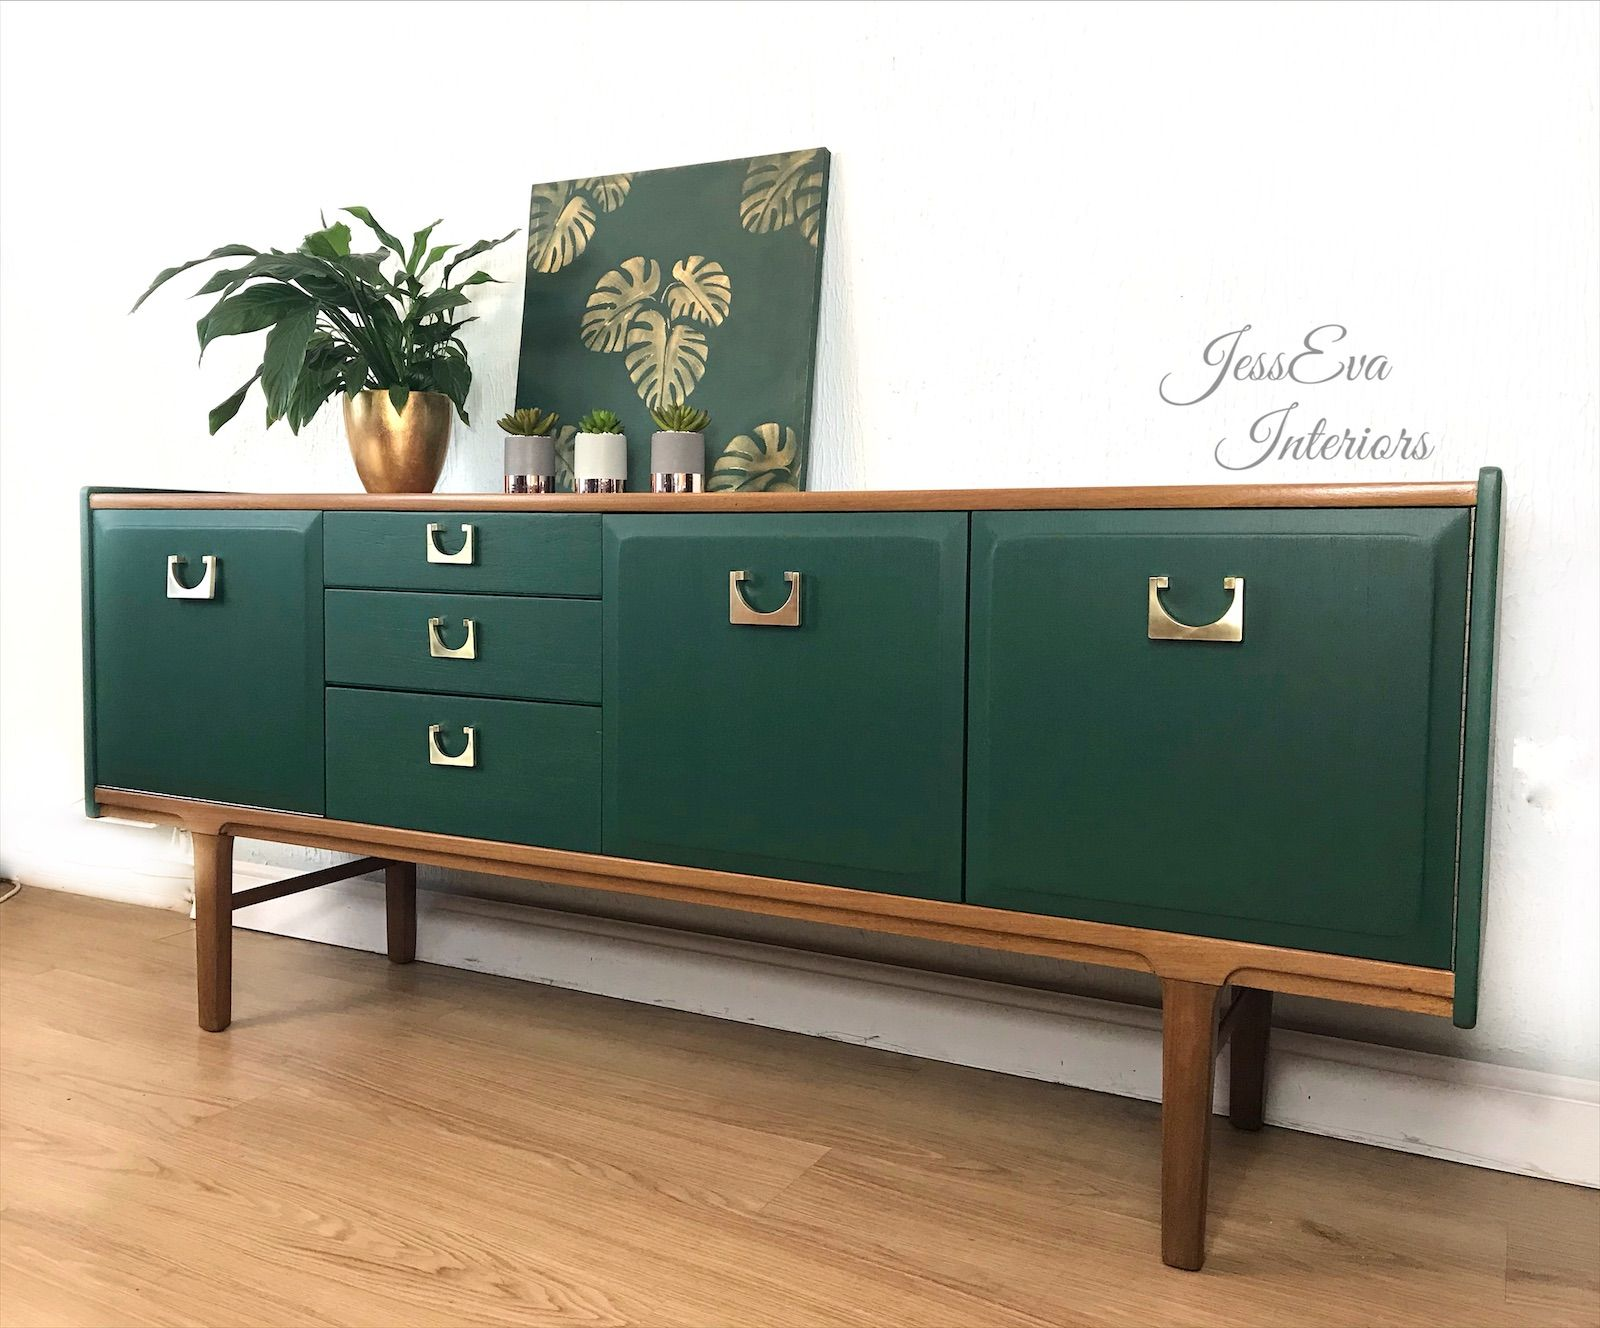 Mid Century Modern Sideboard Painted In Fusion Pressed Fern In 2020 Mid Century Sideboard Mid Century Modern Sideboard Painted Sideboard